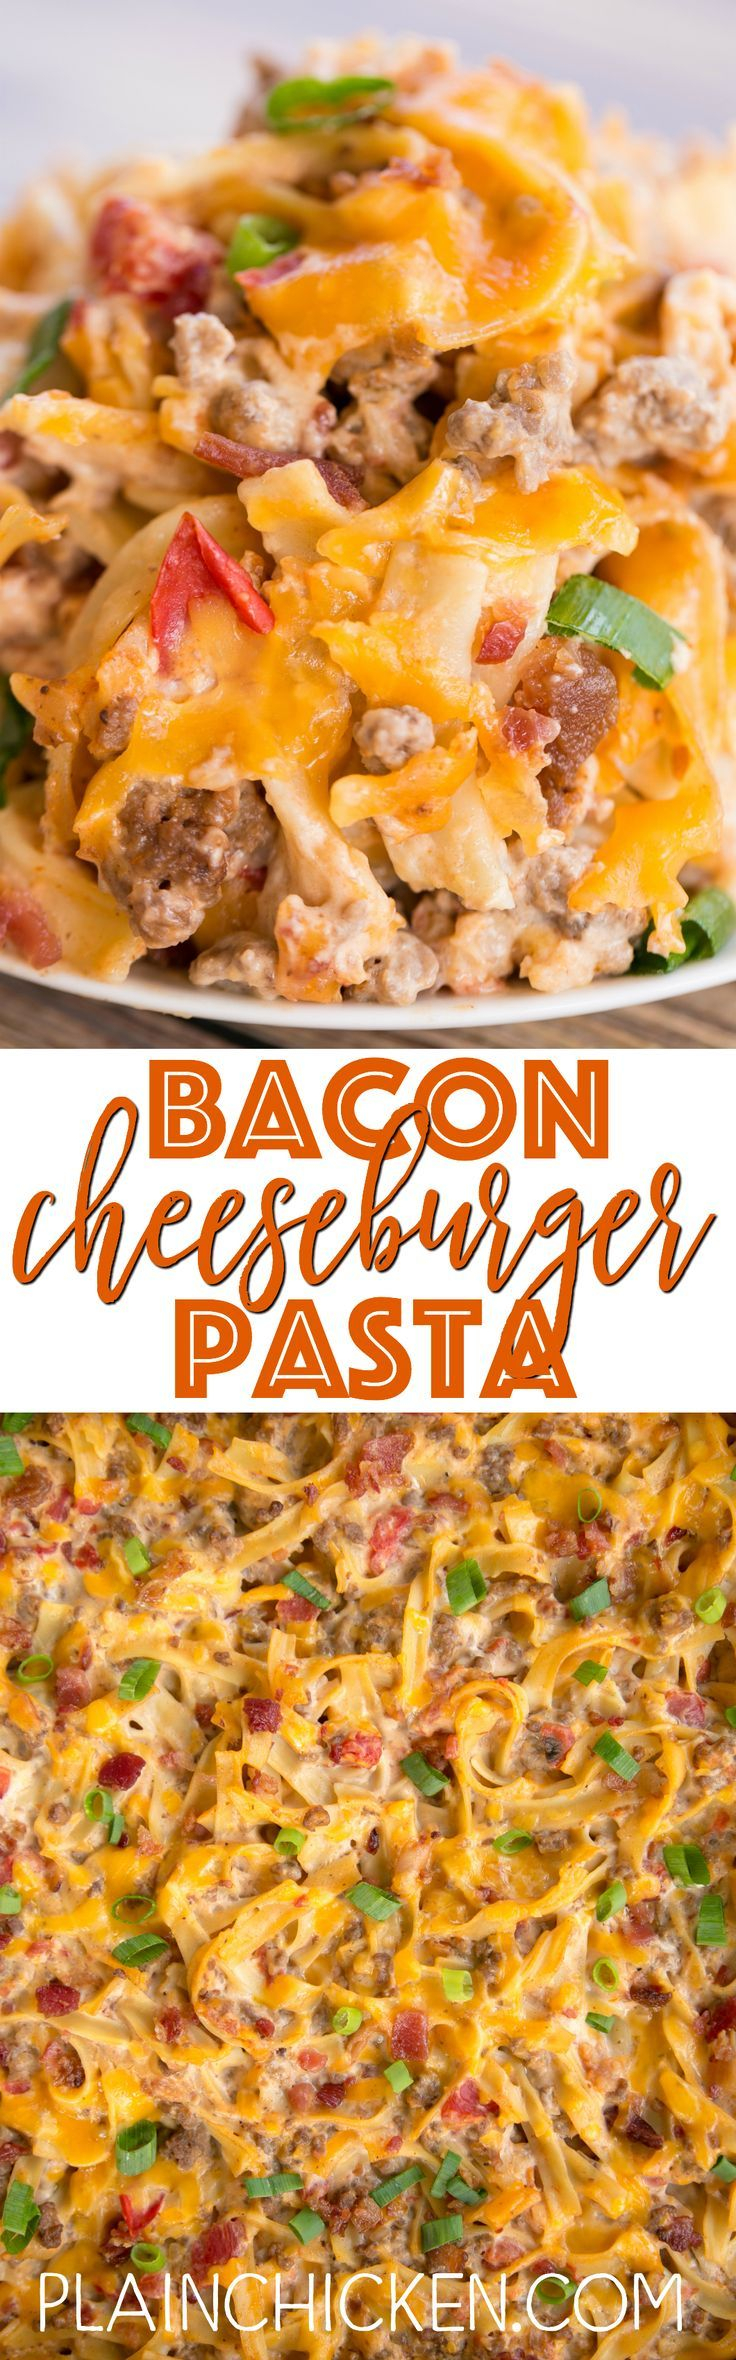 Bacon Cheeseburger Pasta - comfort food at its best! Everyone cleaned their plate!! Hamburger, bacon, hamburger seasoning, cheese soup, sour cream, cheddar cheese and diced tomatoes. Can make ahead and freeze casserole for later. Such an easy dinner recip